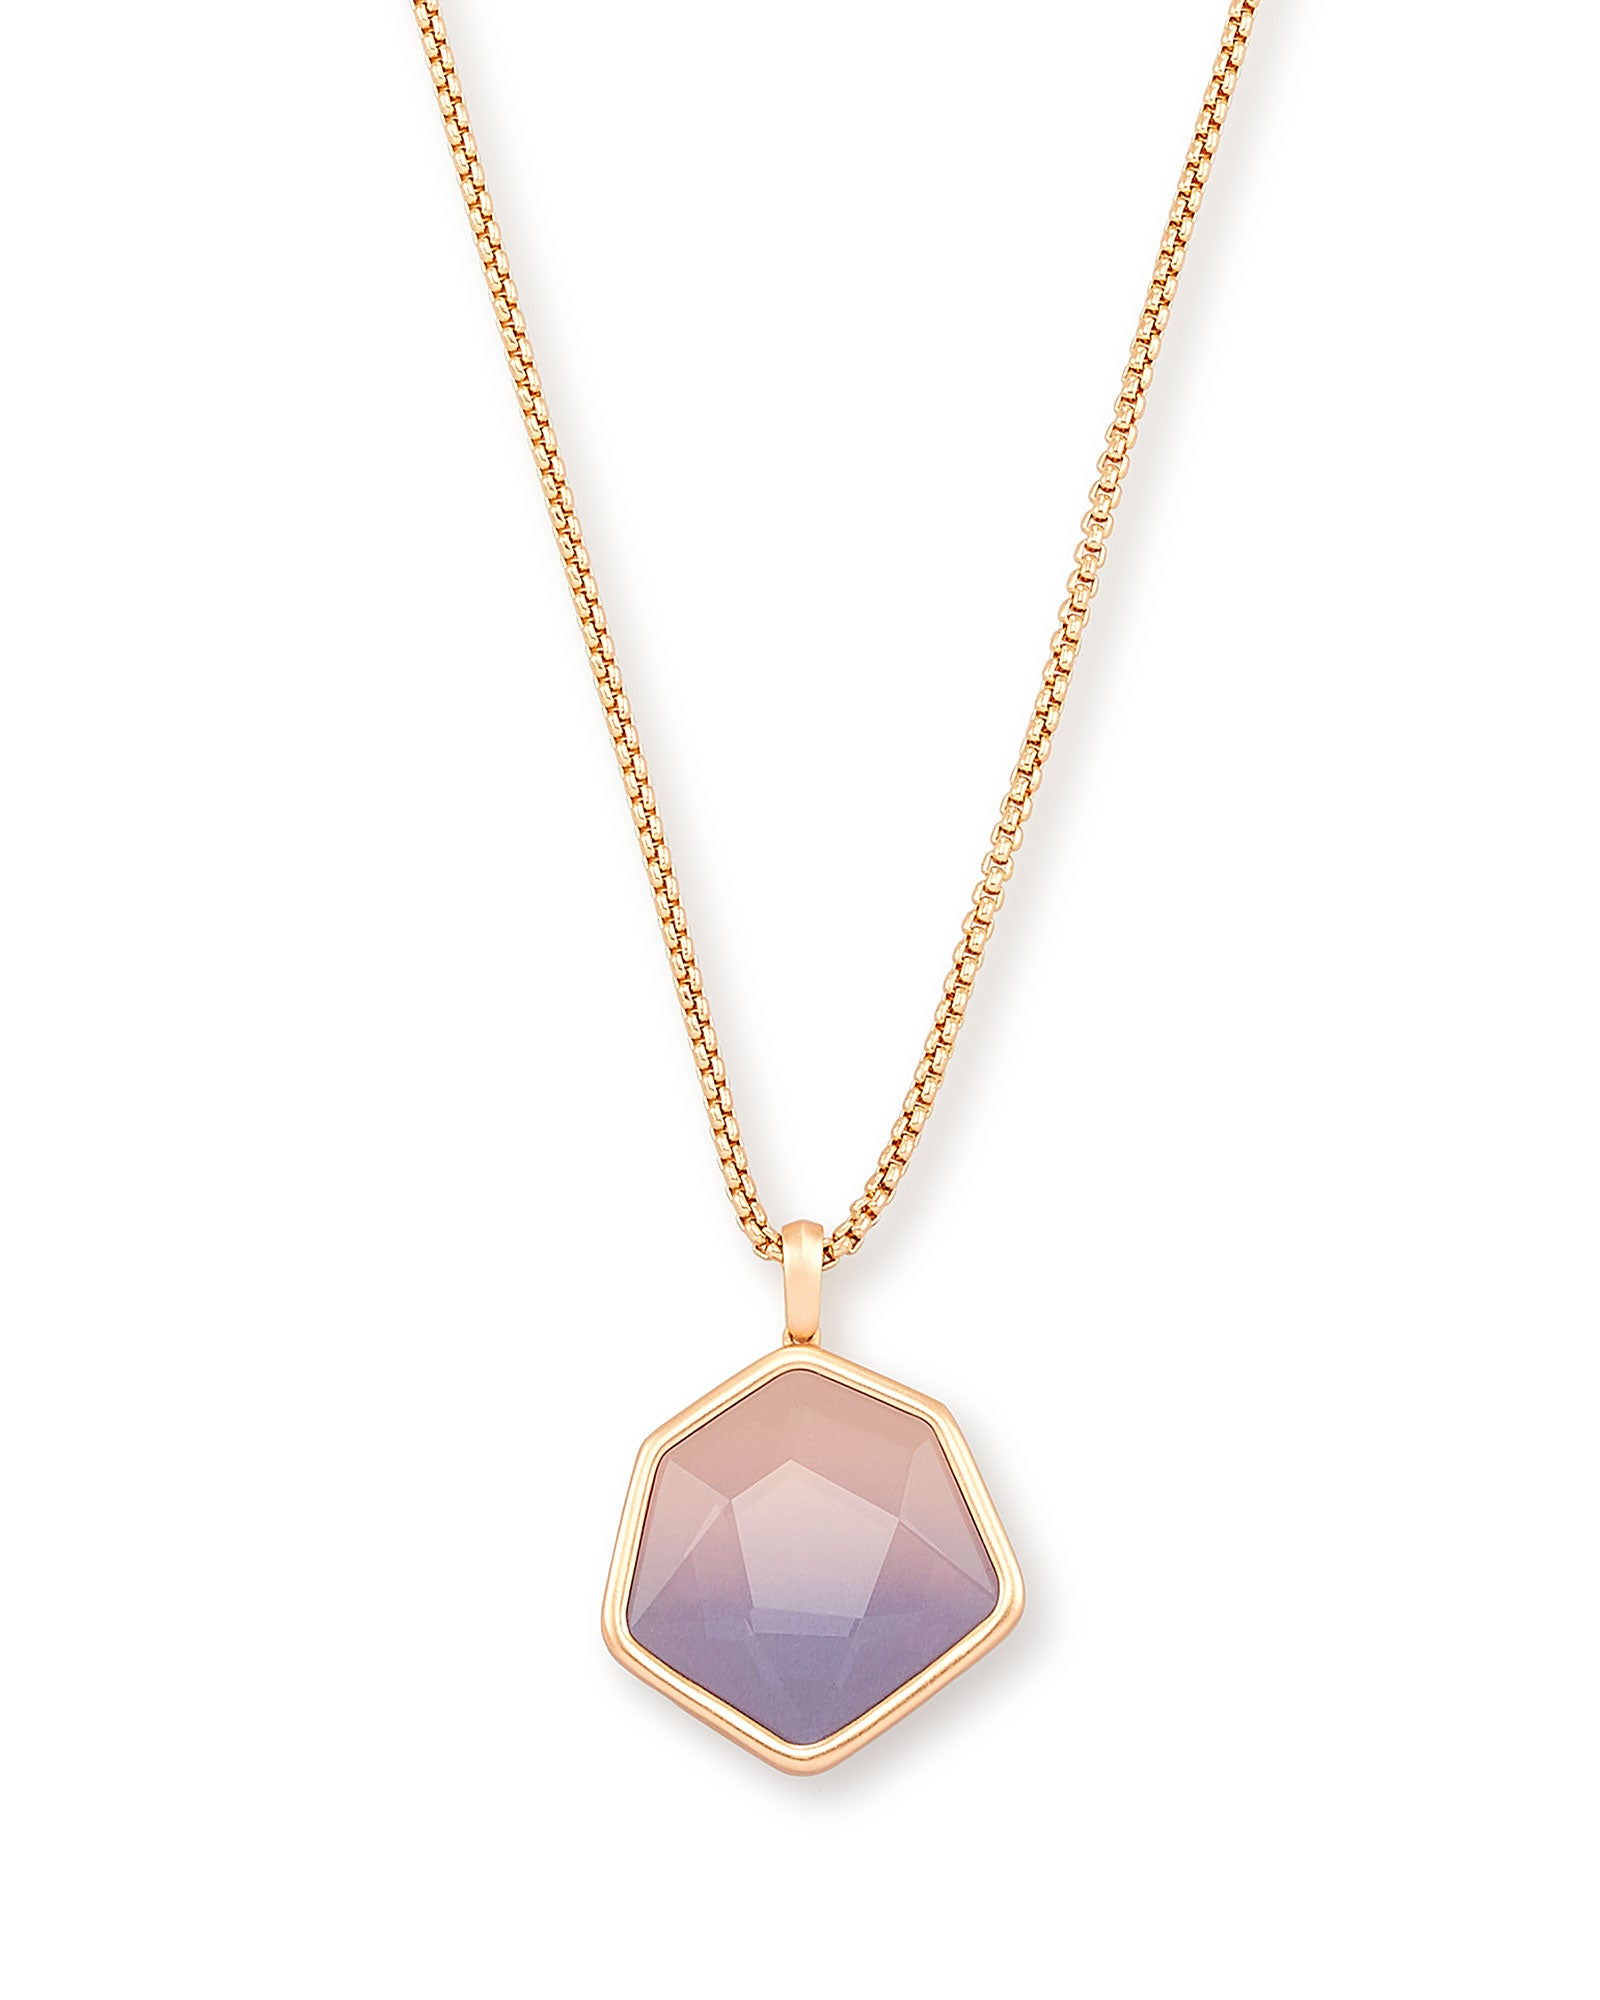 Kendra Scott Vanessa Silver Long Pendant Necklace in Charcoal Gray Ombre